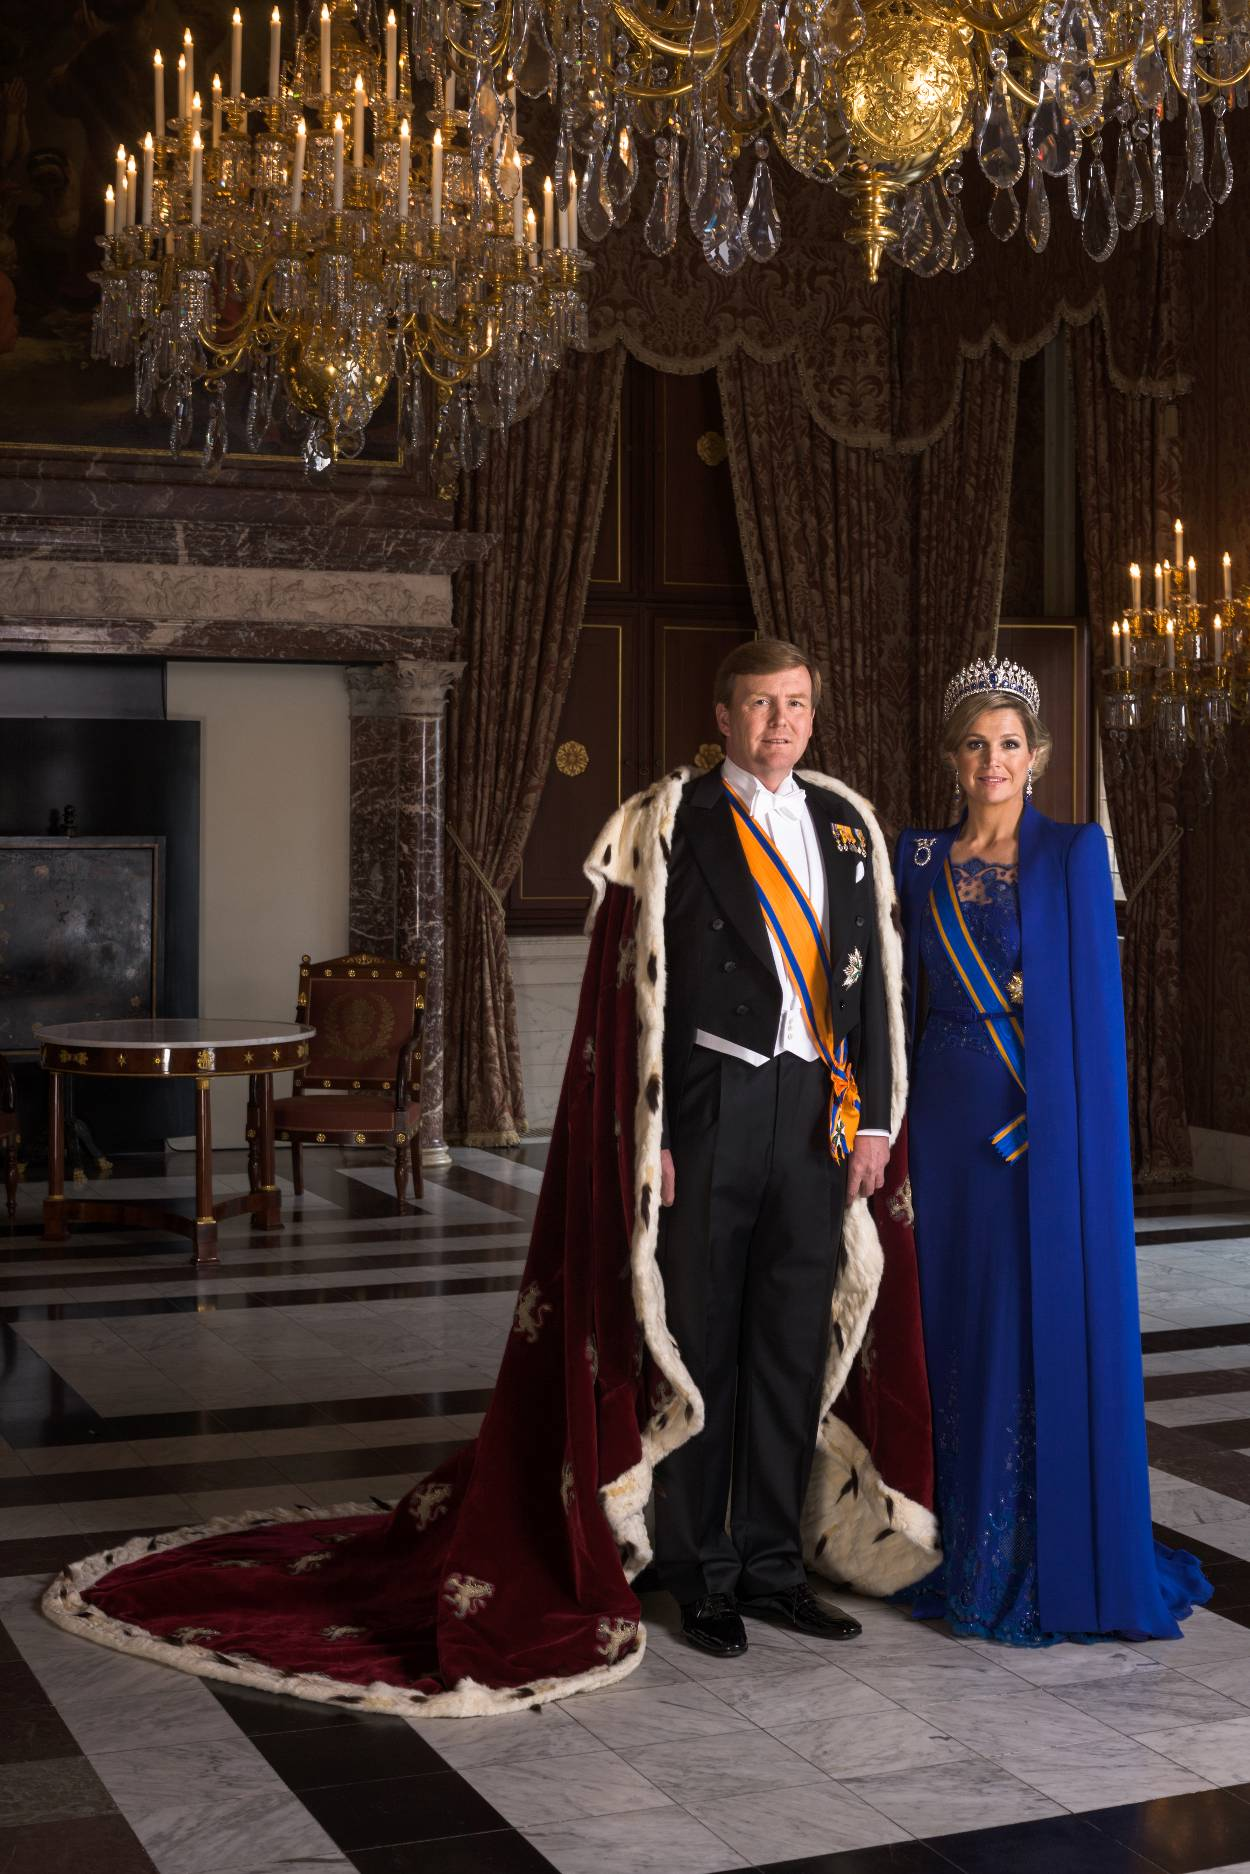 a878e5bca9b025 Koningin Máxima s favoriete couturier geeft zich bloot in Centraal ...